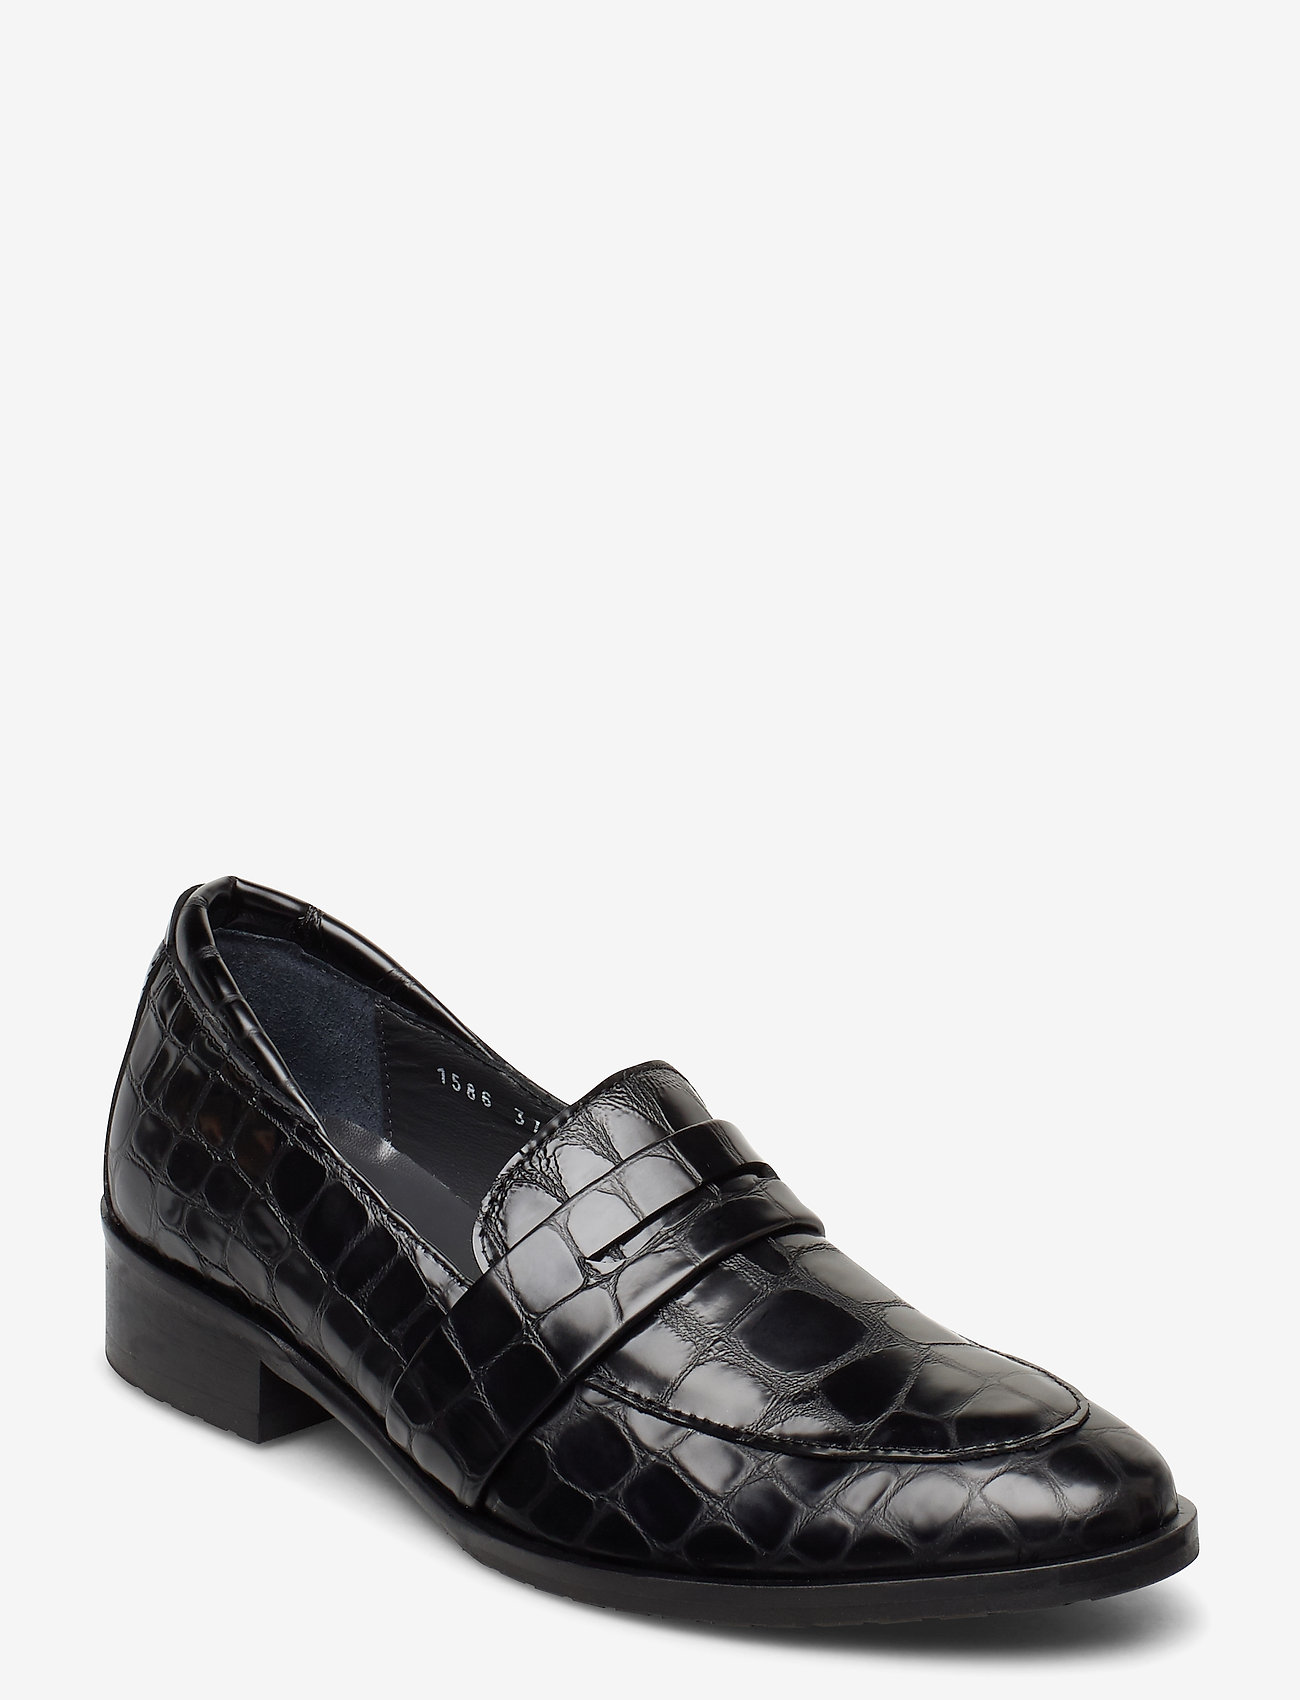 ANGULUS - Loafer - flat - instappers - 1674 black croco - 0